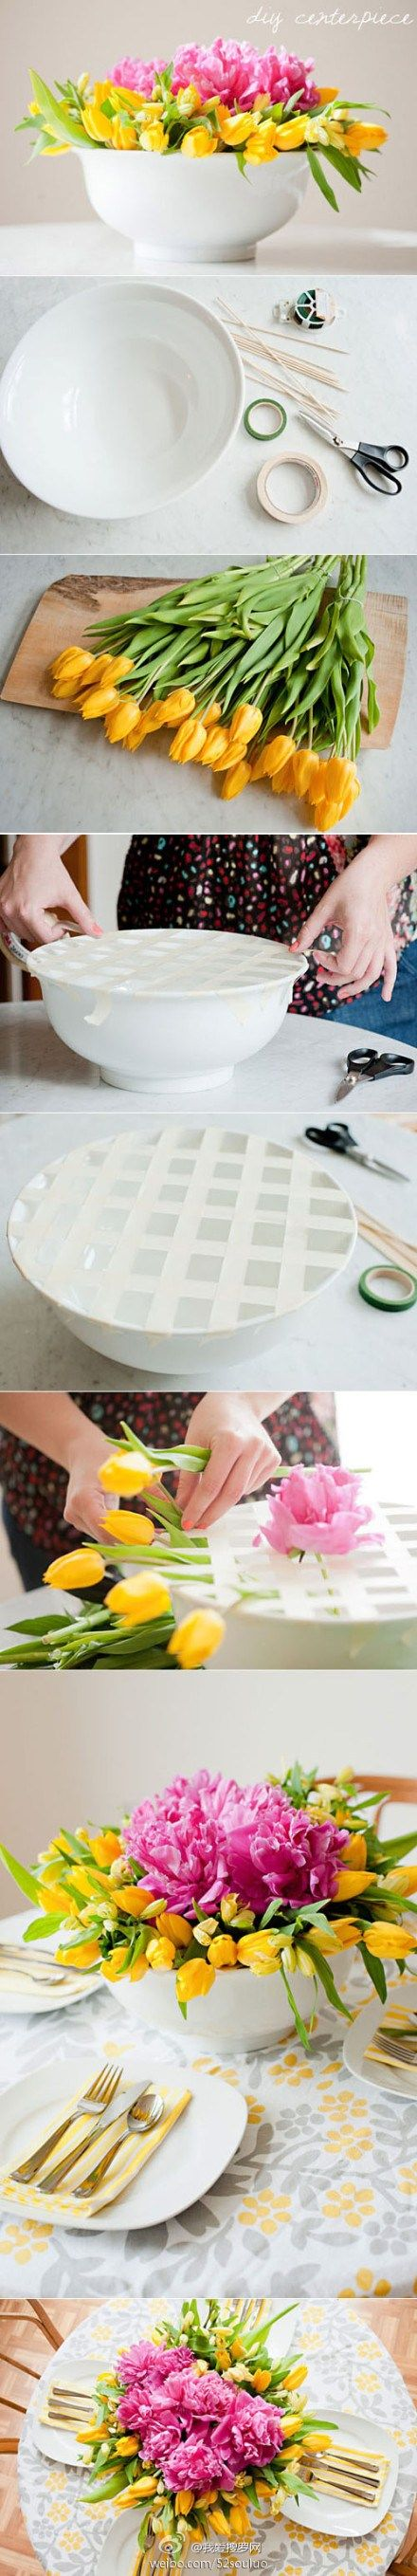 Use tape to make a grid on wide open bowls and vases. The grid makes it easier to decorate flowers.